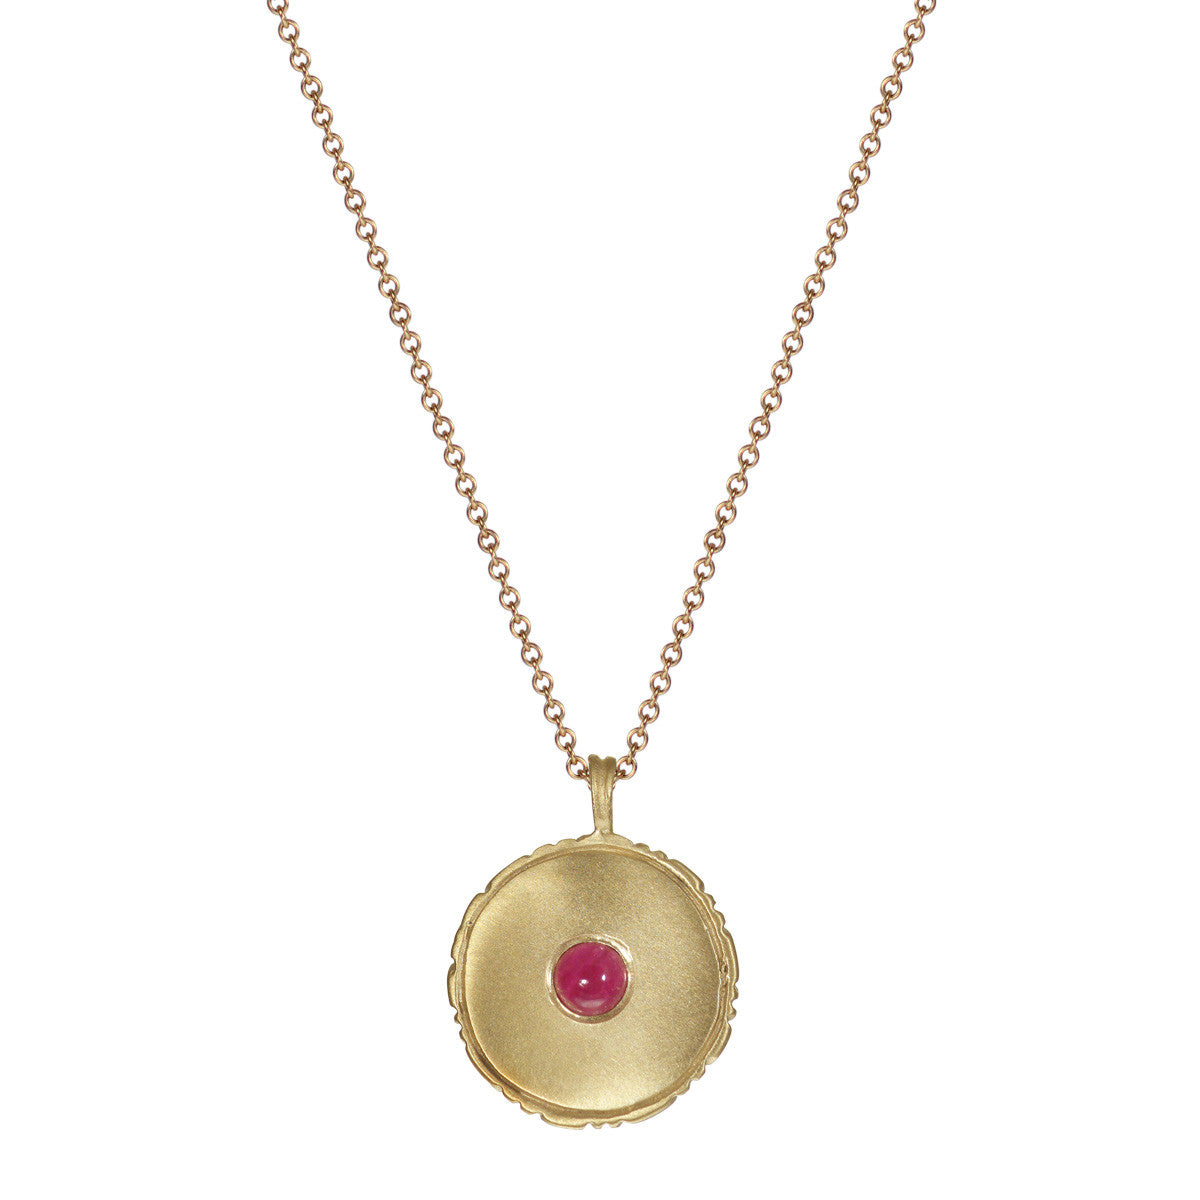 10K Gold Strength is Having a Graceful Life Pendant with Ruby